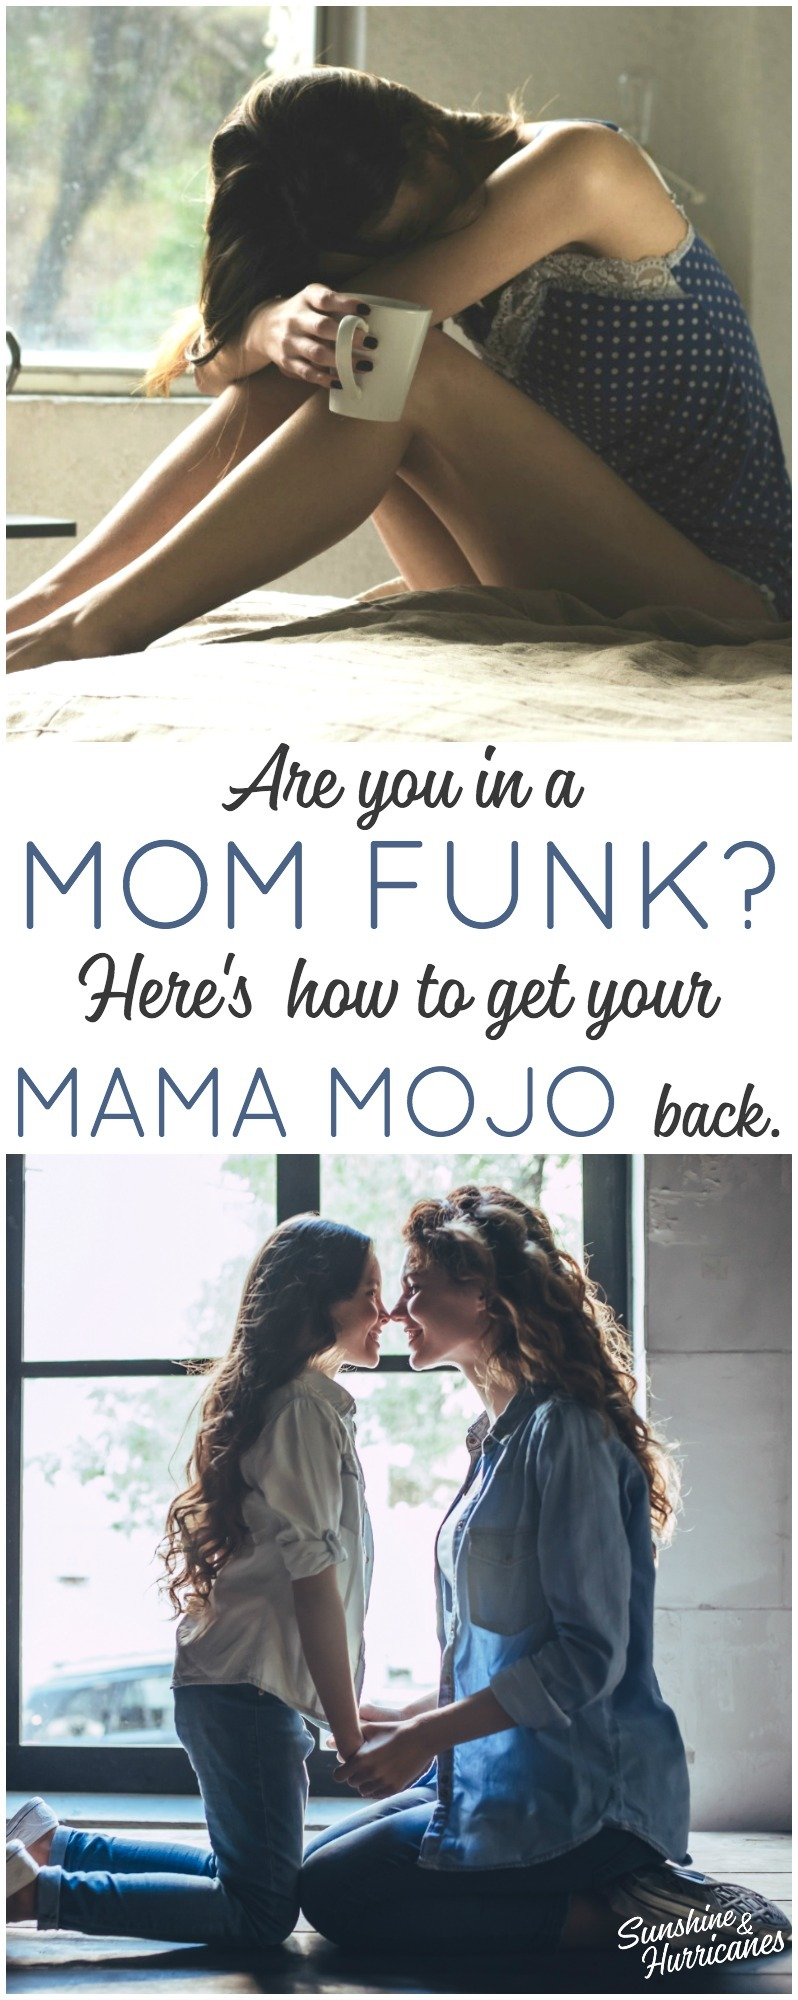 Are you in a mom funk? Feeling frustrated, overwhelmed and angry? You're not alone and here's how to get your mama mojo back.